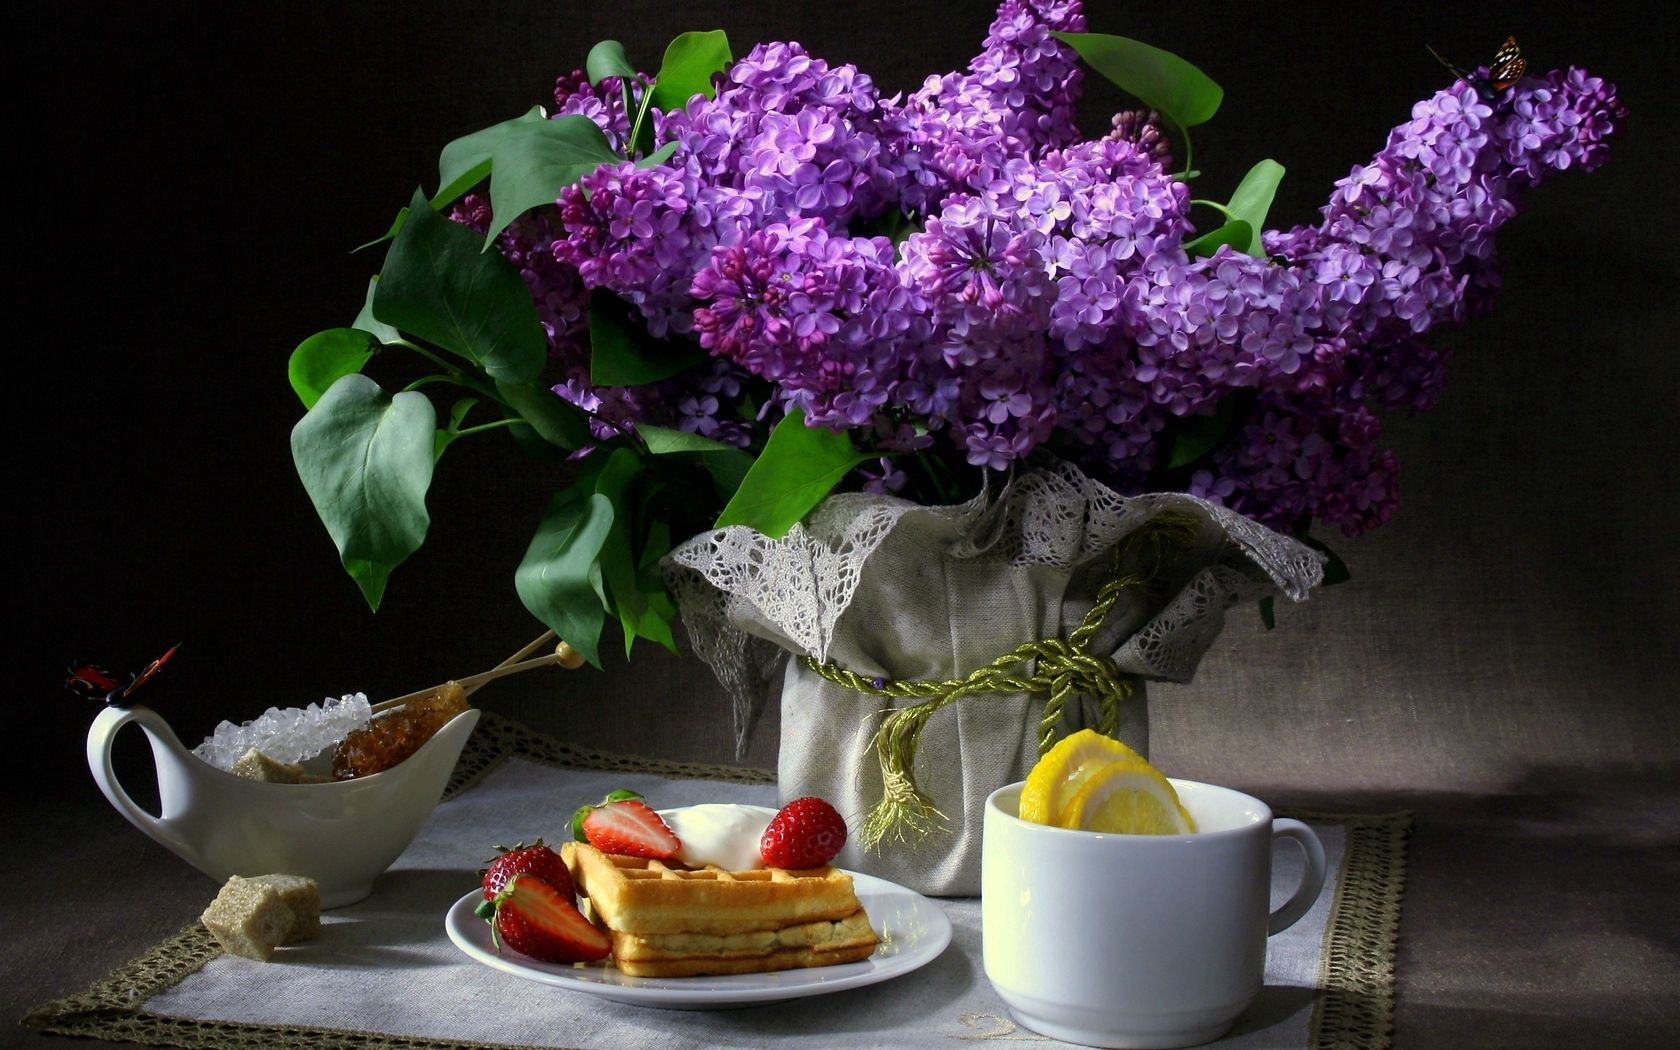 81977 download wallpaper Butterflies, Flowers, Food, Strawberry, Lilac, Waffles, Still Life, Cup, Dark Background, Lemon, Napkin, Breakfast, Sugar screensavers and pictures for free